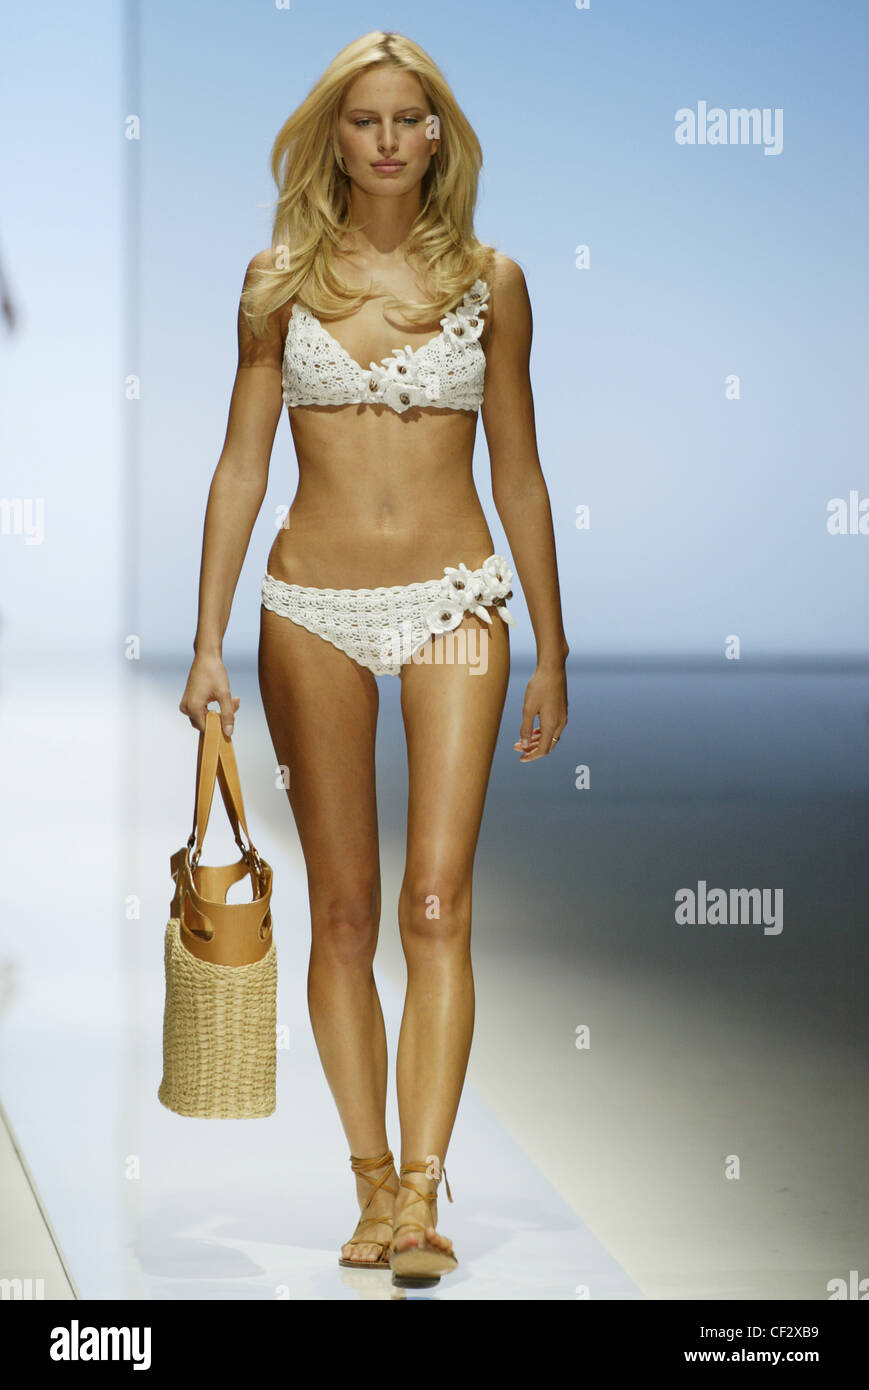 Paco Rabanne Paris Ready To Wear Spring Summer Model Karolina Kurkova Stock Photo 43705181 Alamy